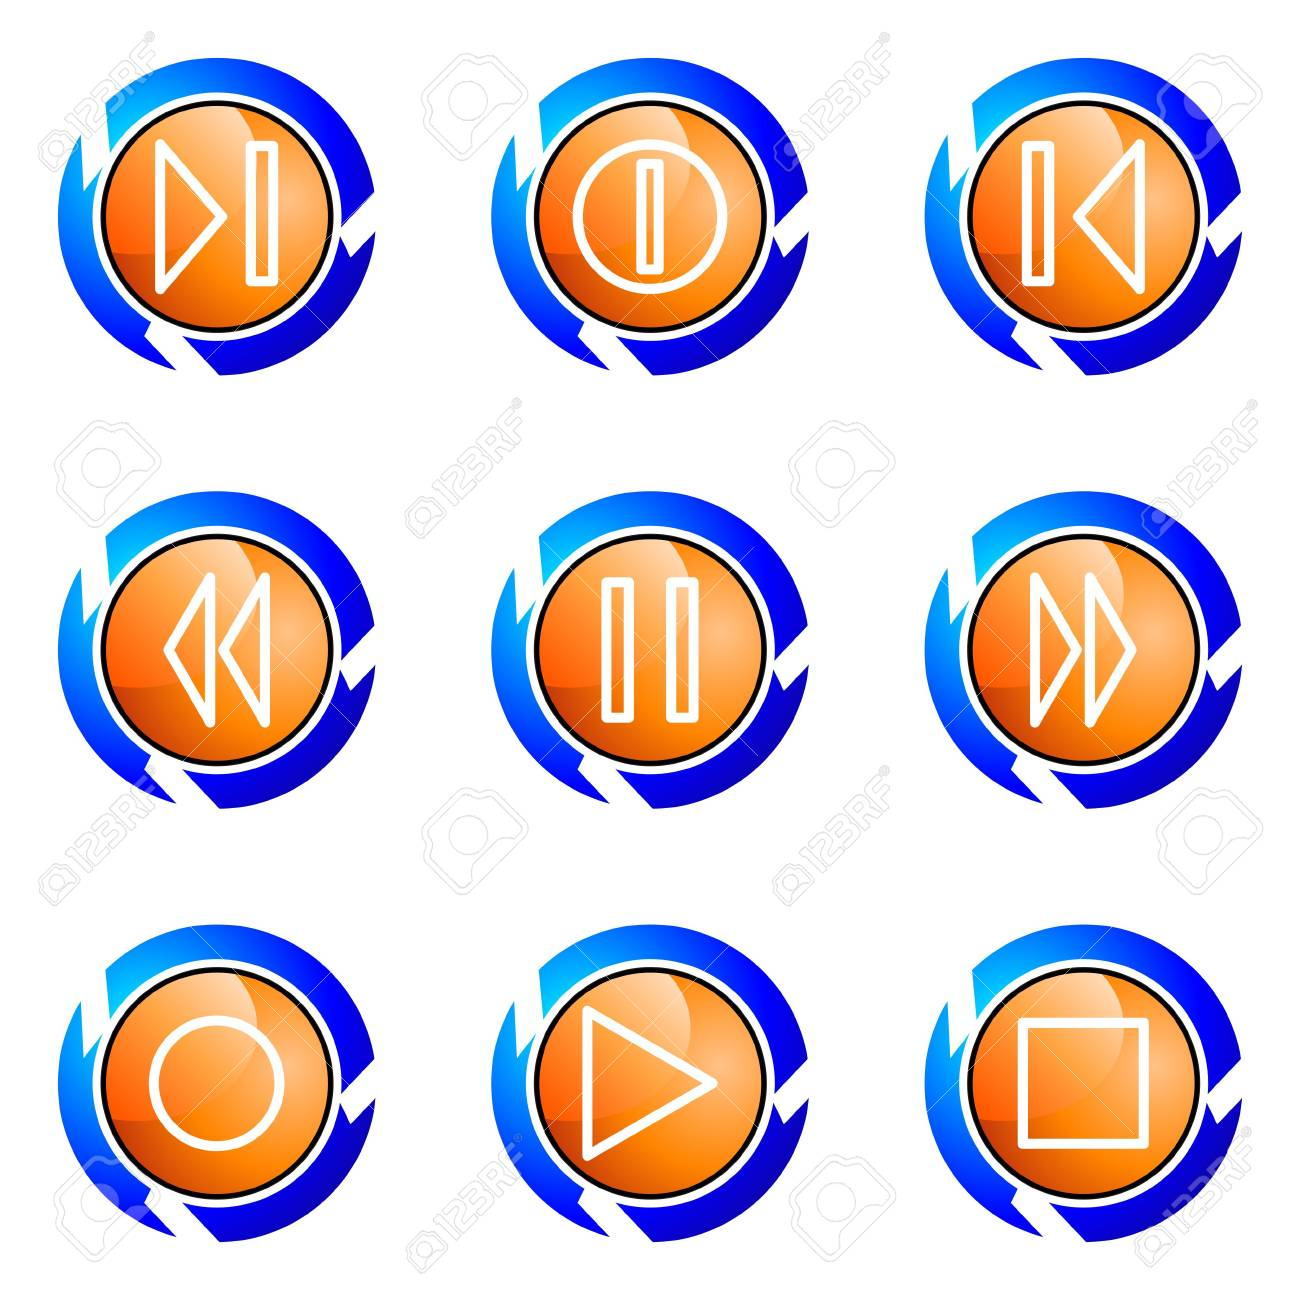 Set of 9 glossy web icons (set 23). Isolated button in various color. Stock Vector - 16681942